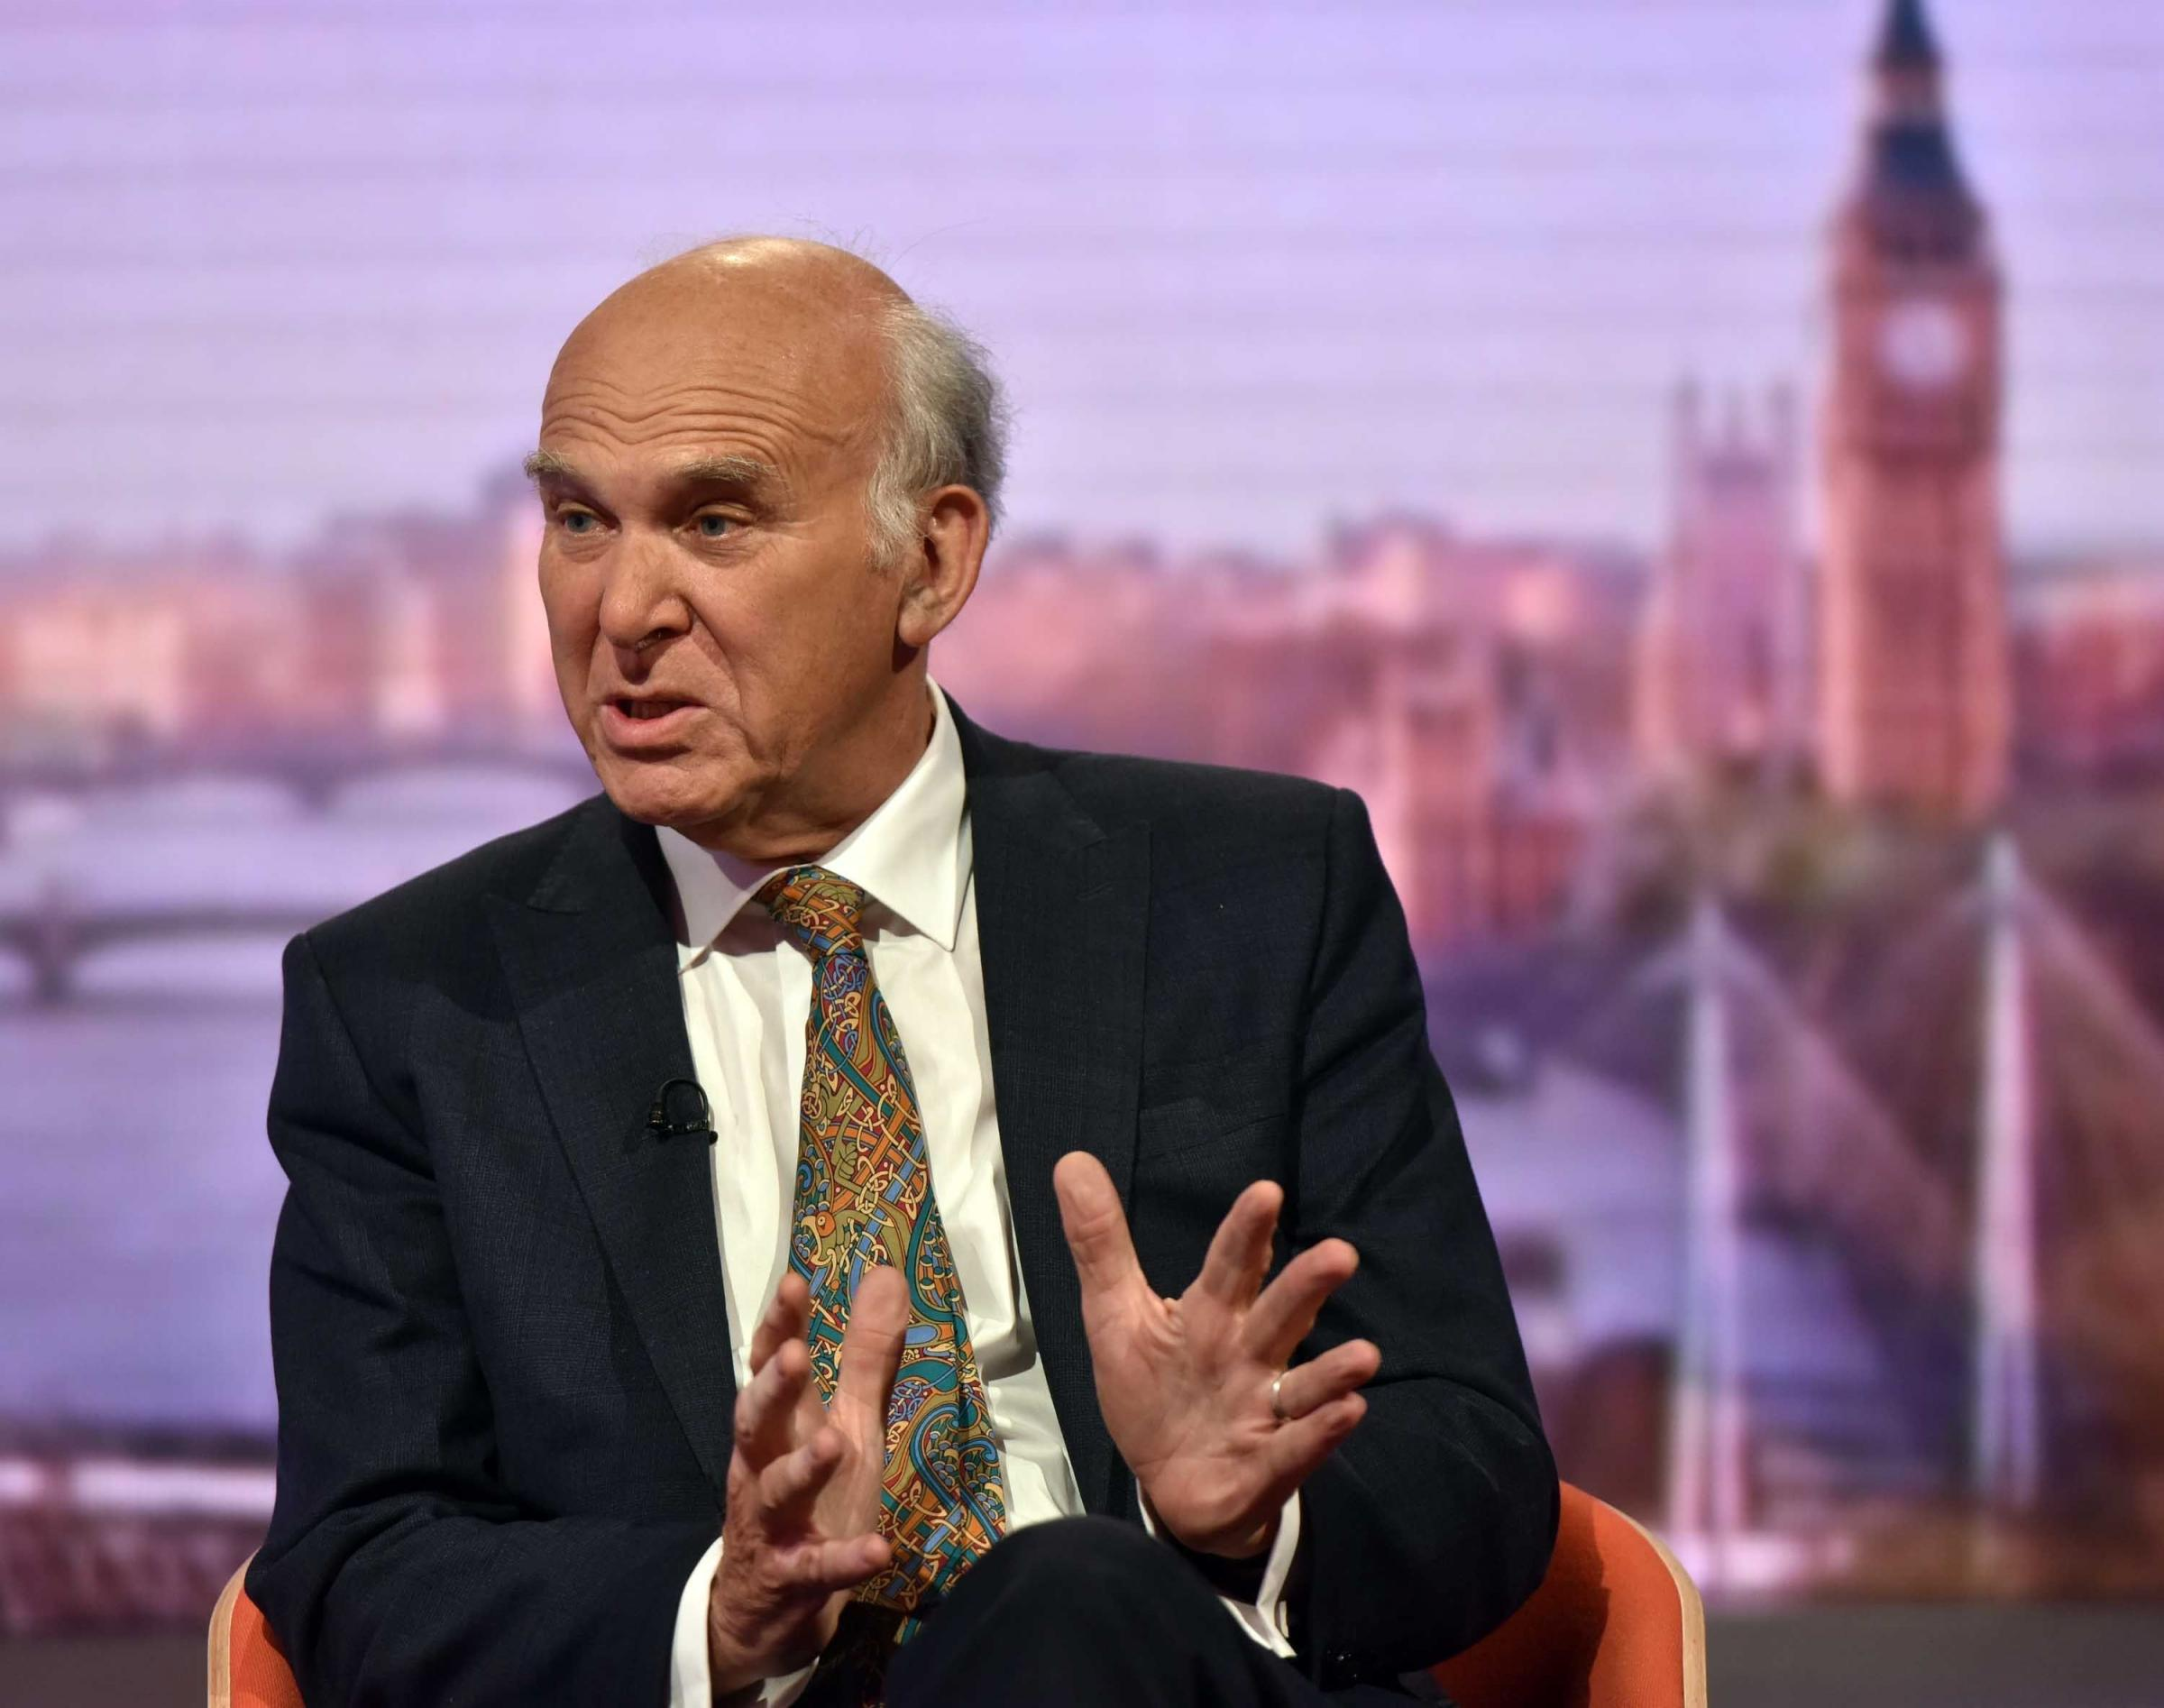 Vince Cable says he thinks Brexit might not happen. It's all part of a conspiracy to keep us in against our wishes, says one letter writer